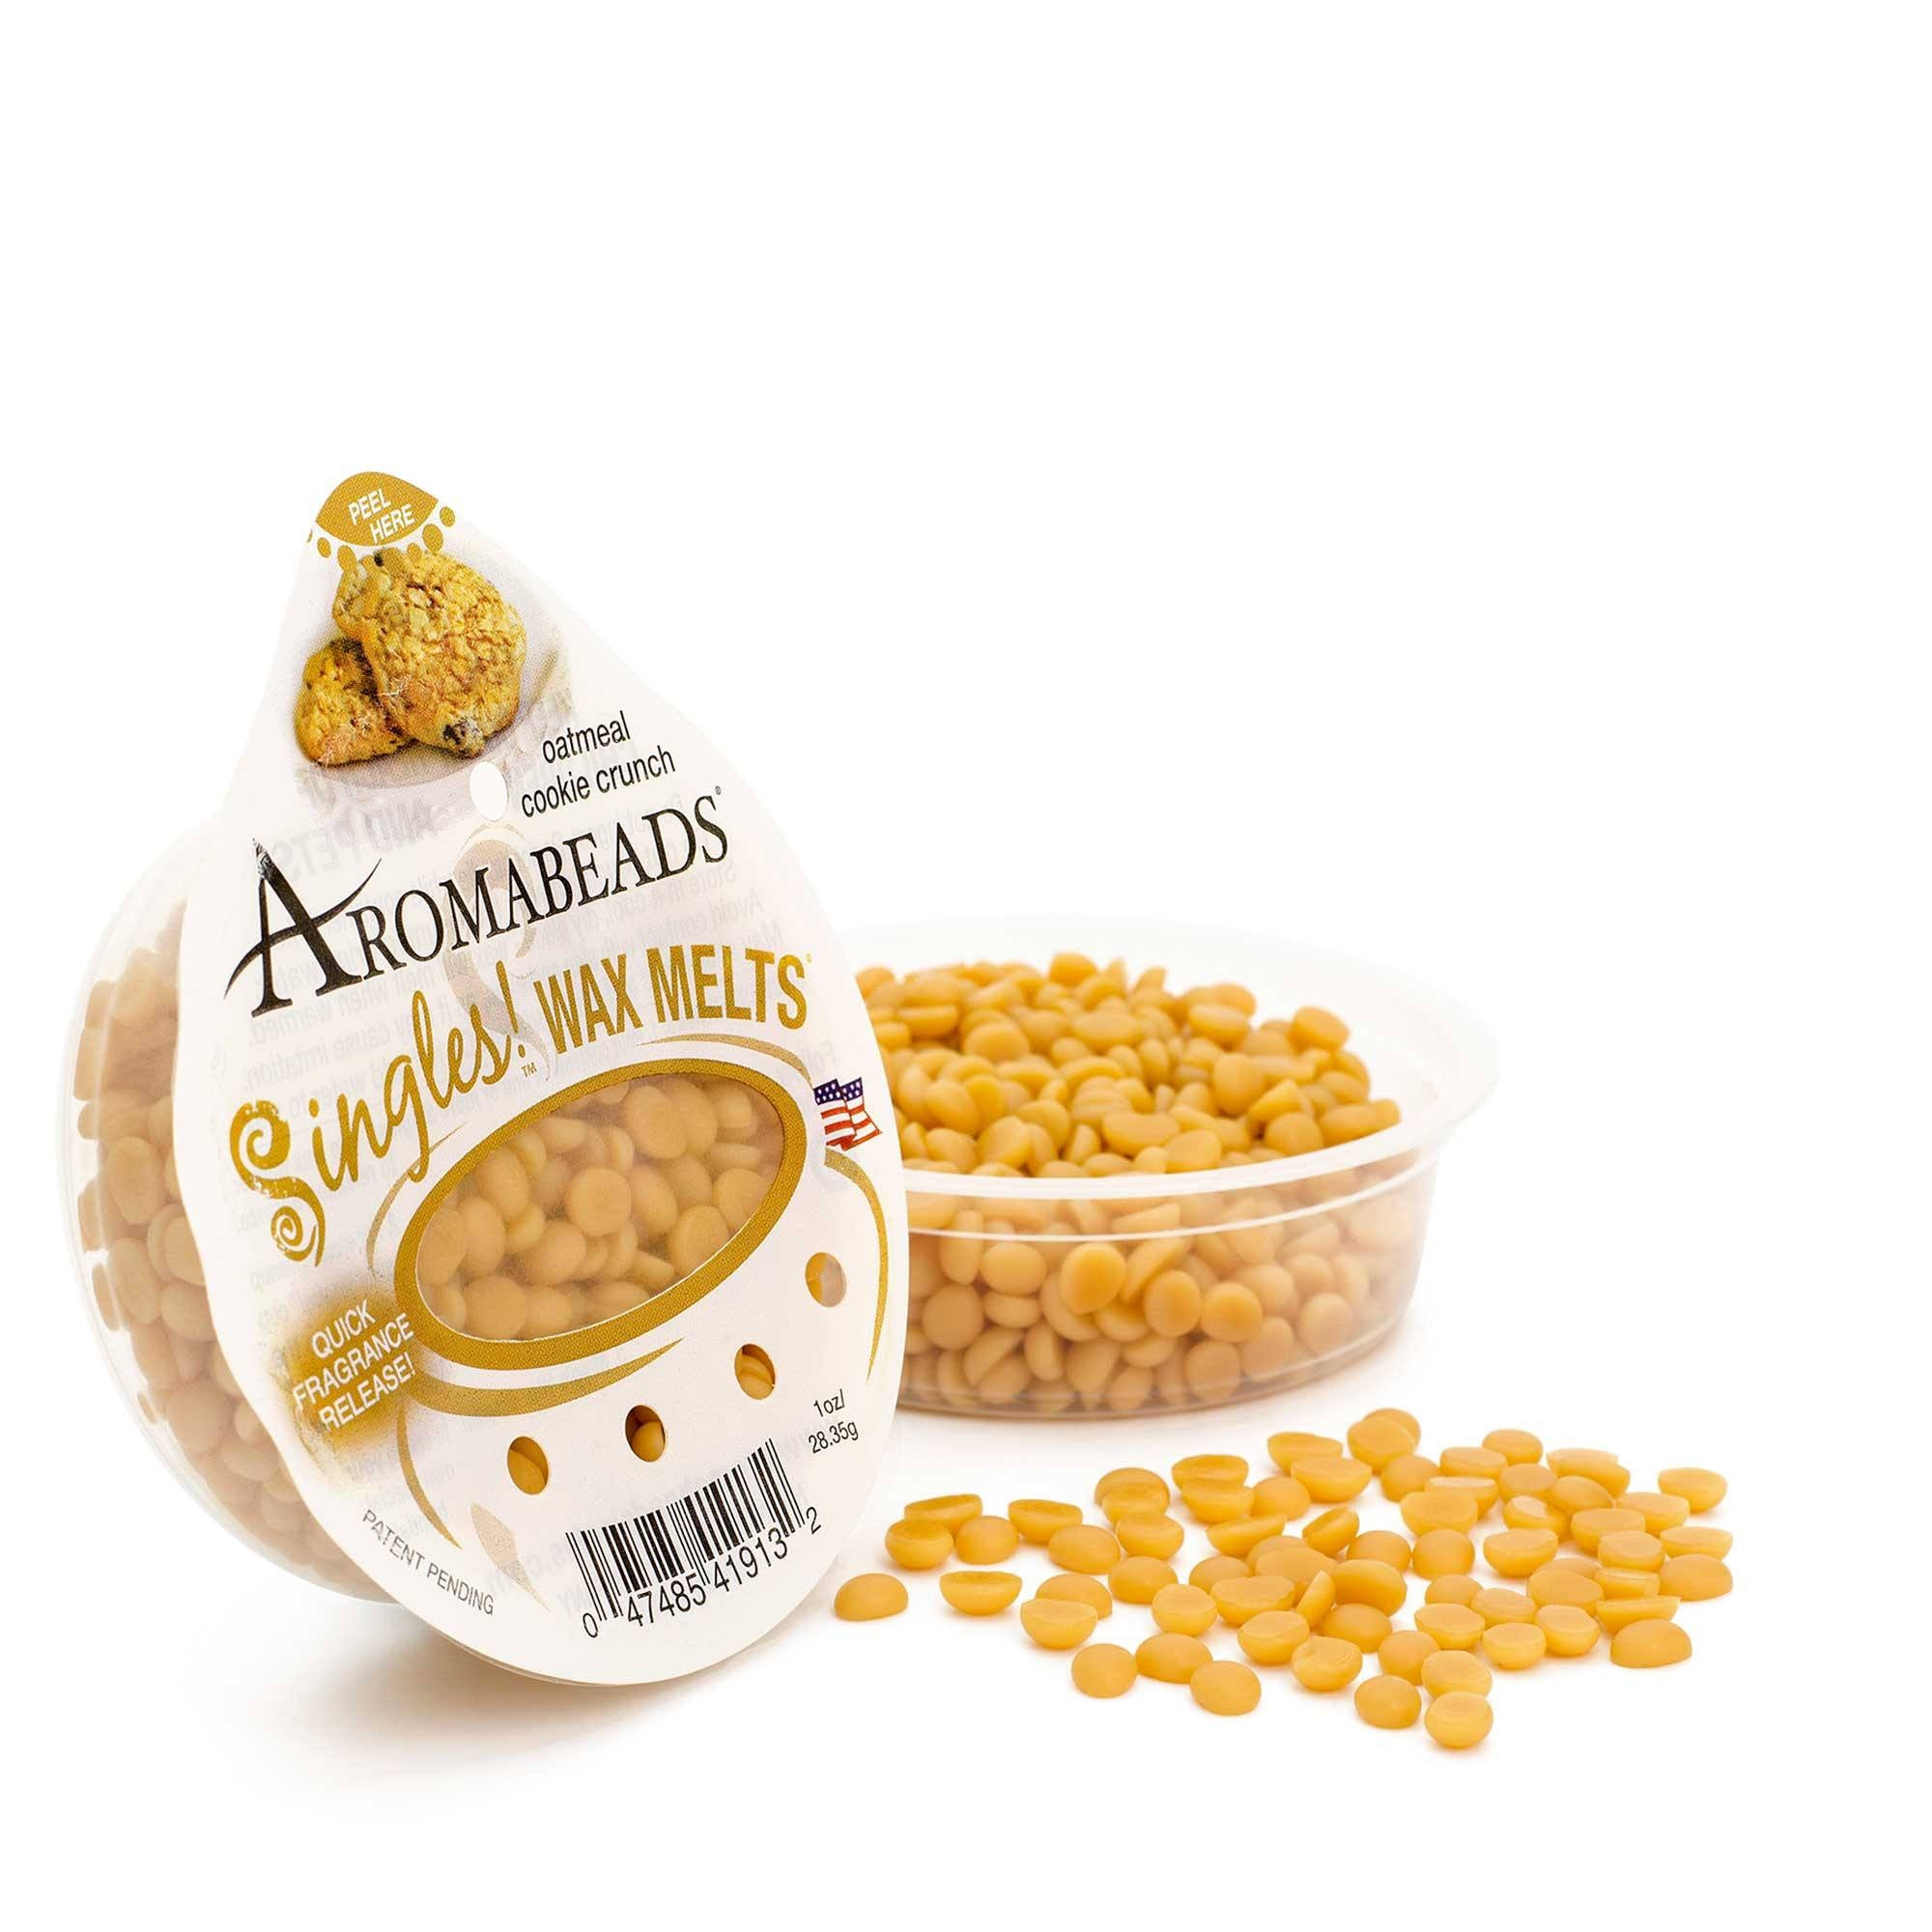 Aromabeads Singles Oatmeal Cookie Crunch Scented Wax Melts - Candlemart.com - 1